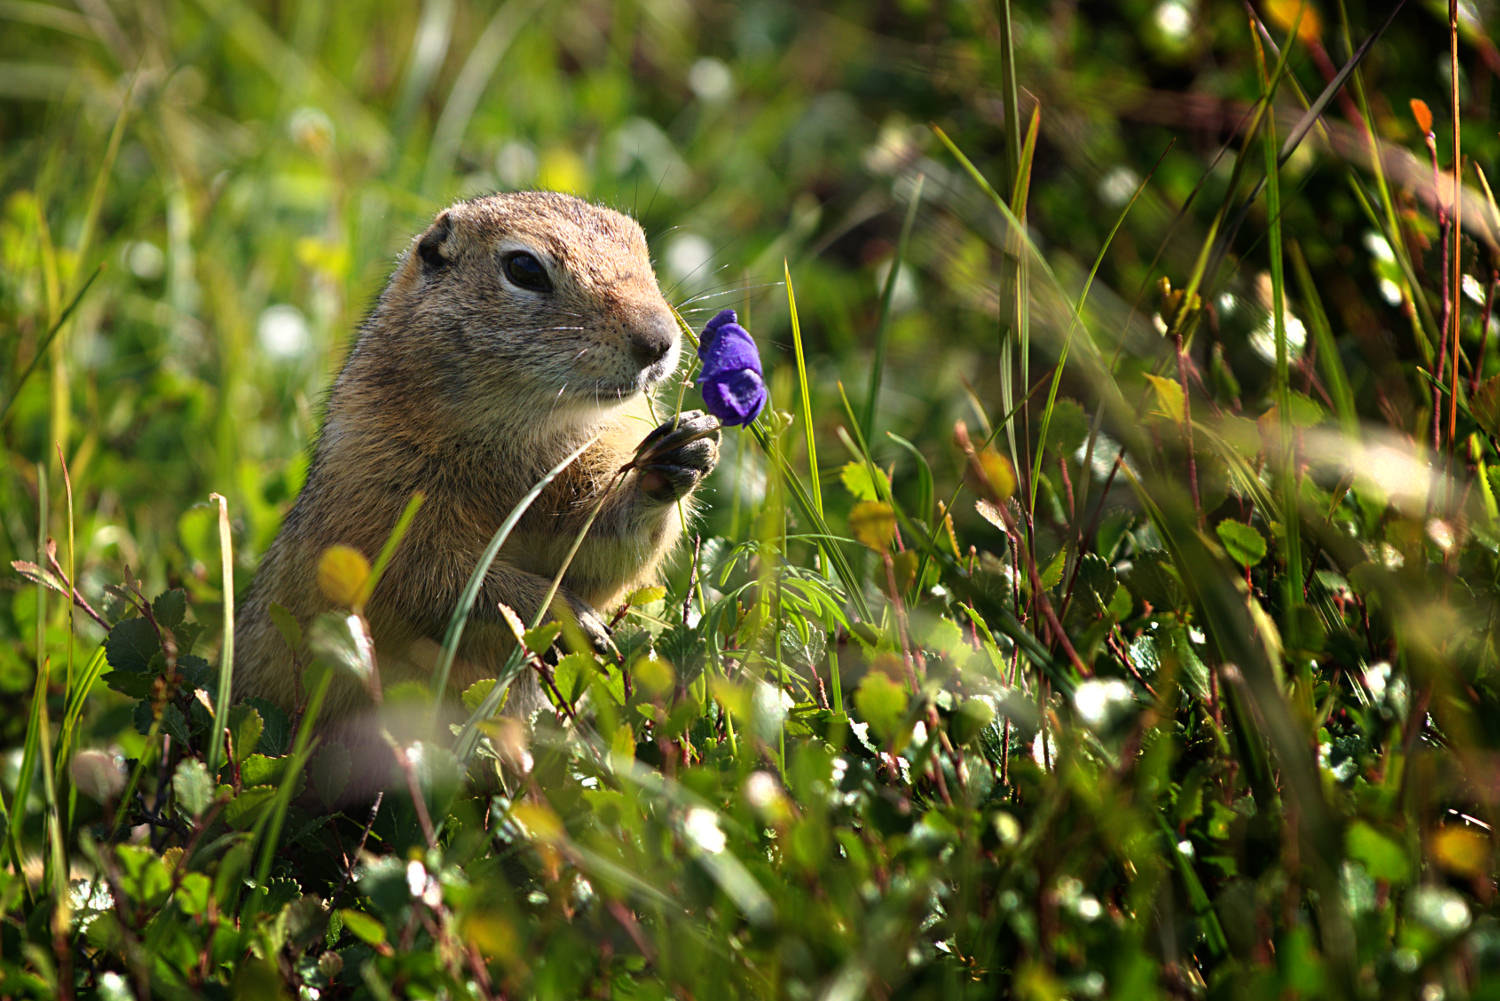 Photograph Prarie Dog with Flower by Jeff Preletz on 500px